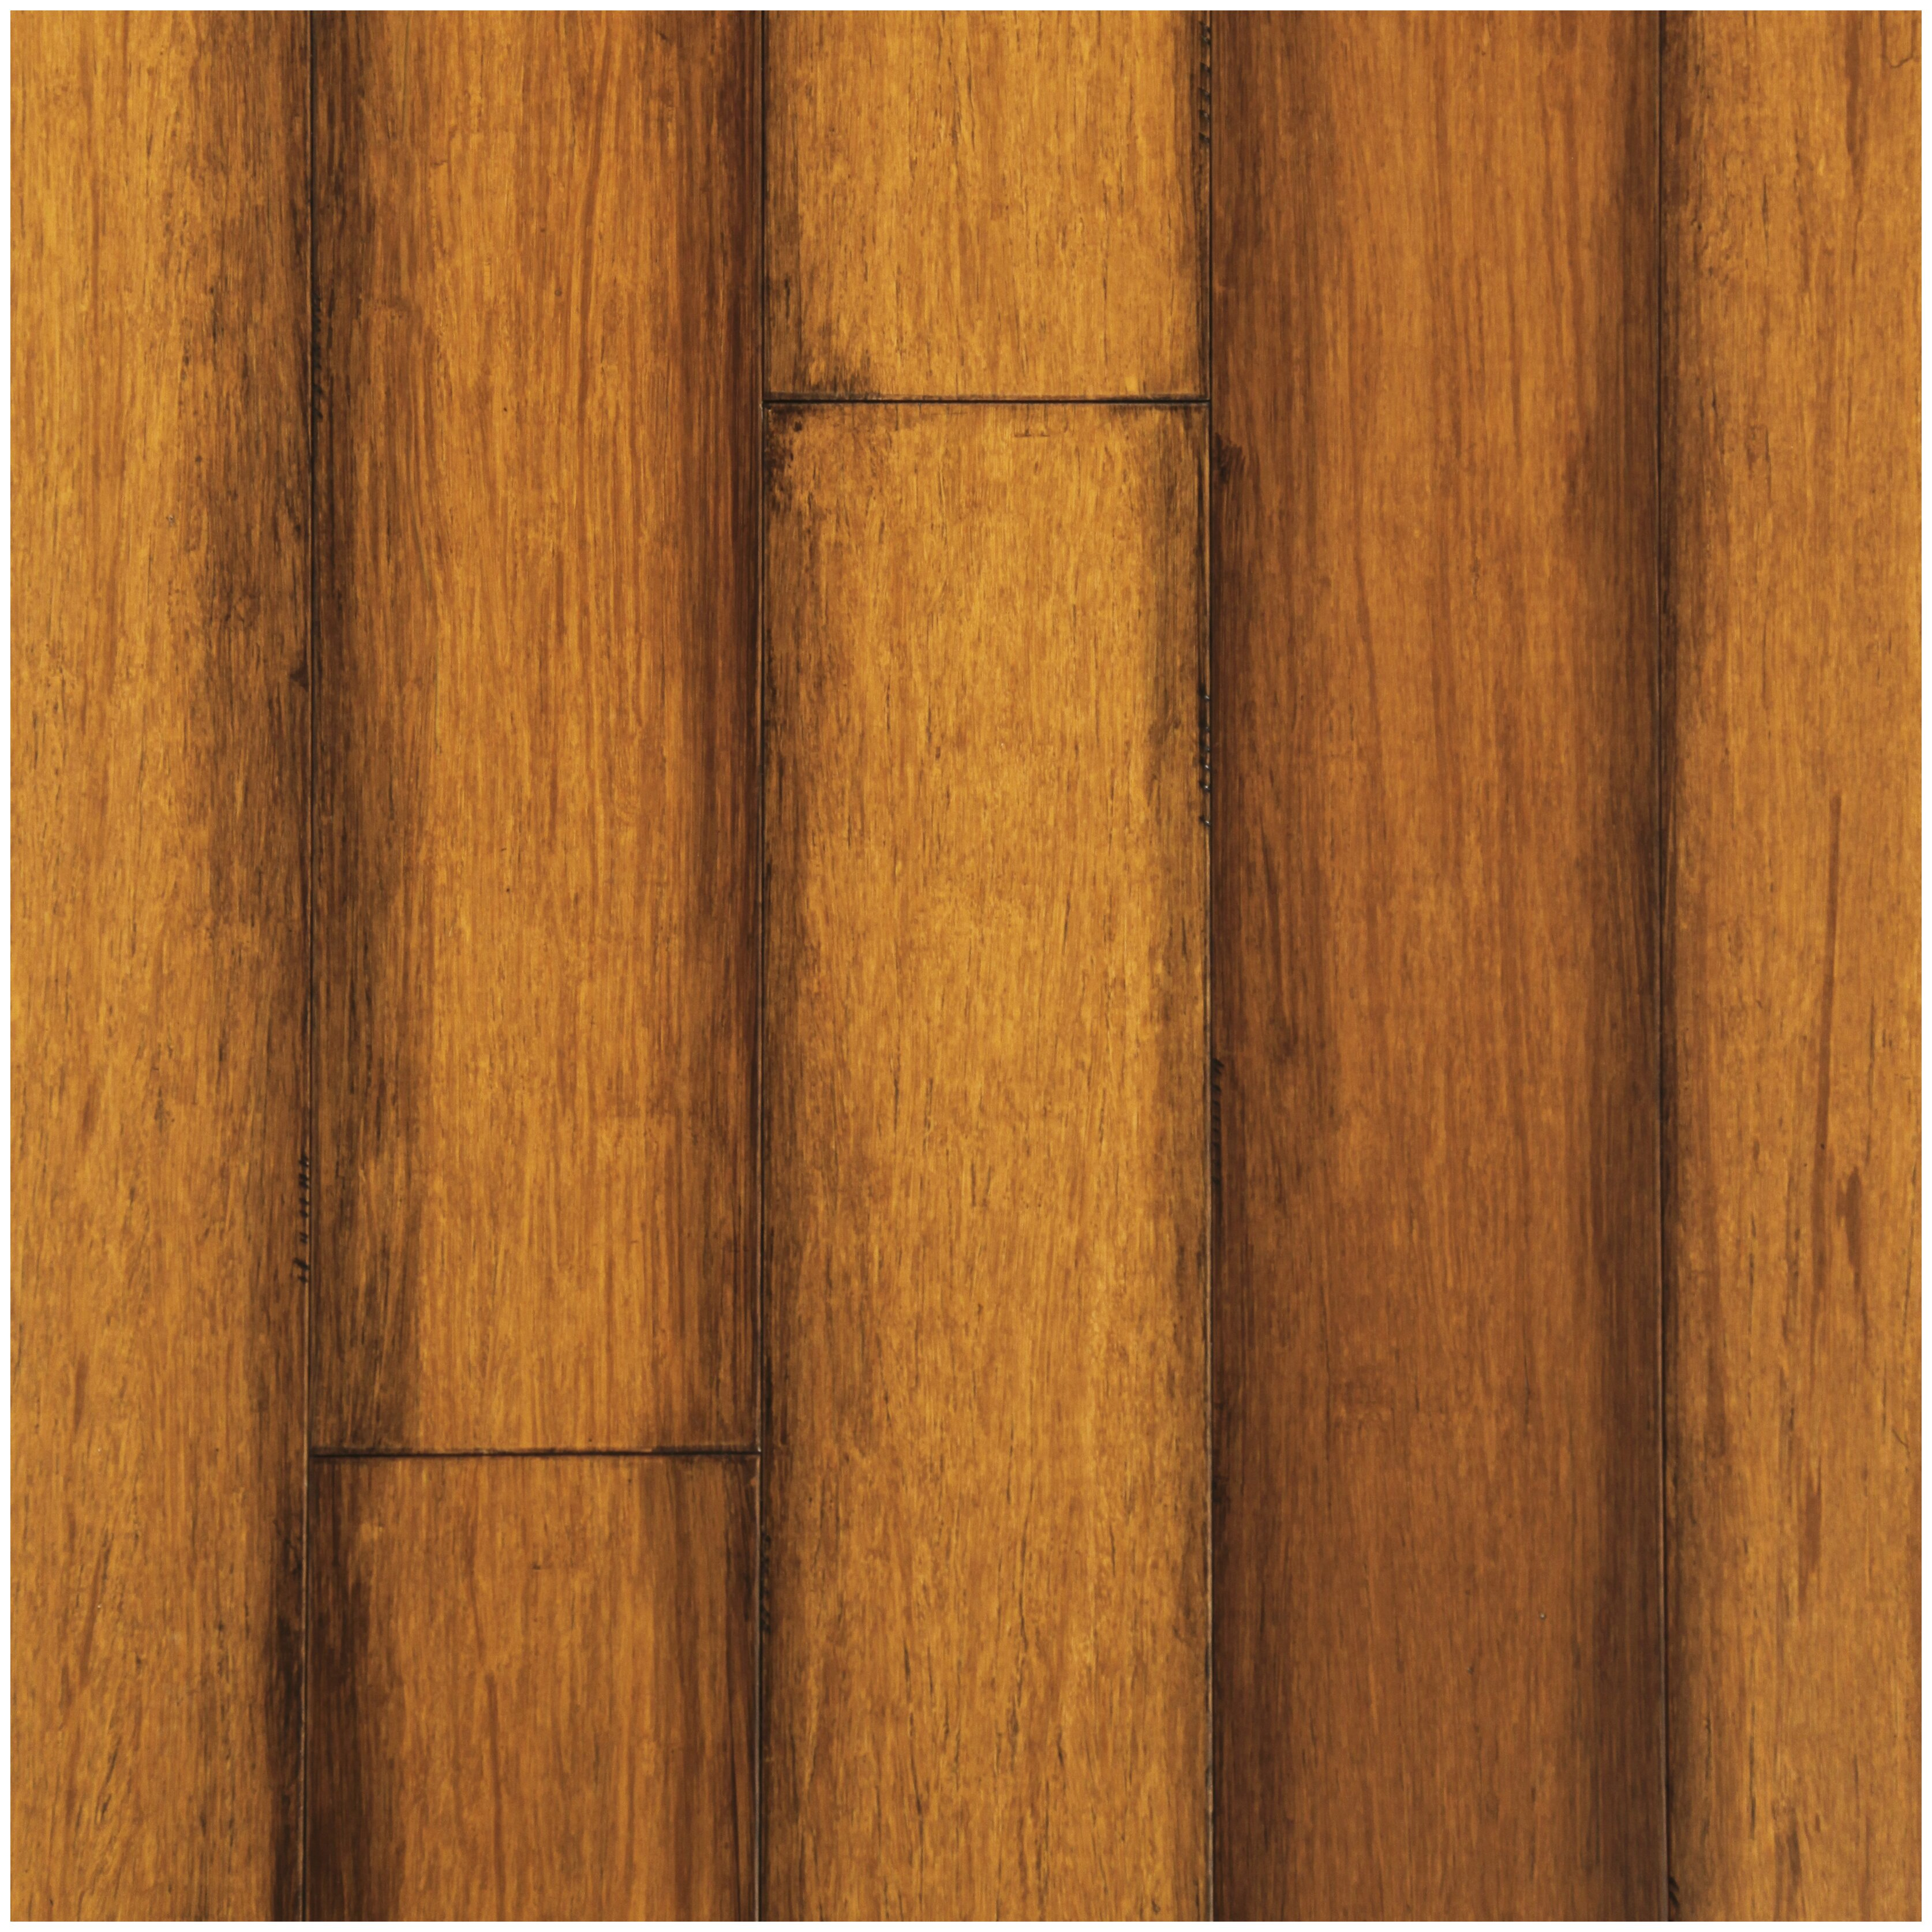 Easoon usa 5 quot engineered strand woven bamboo hardwood for Engineered bamboo flooring